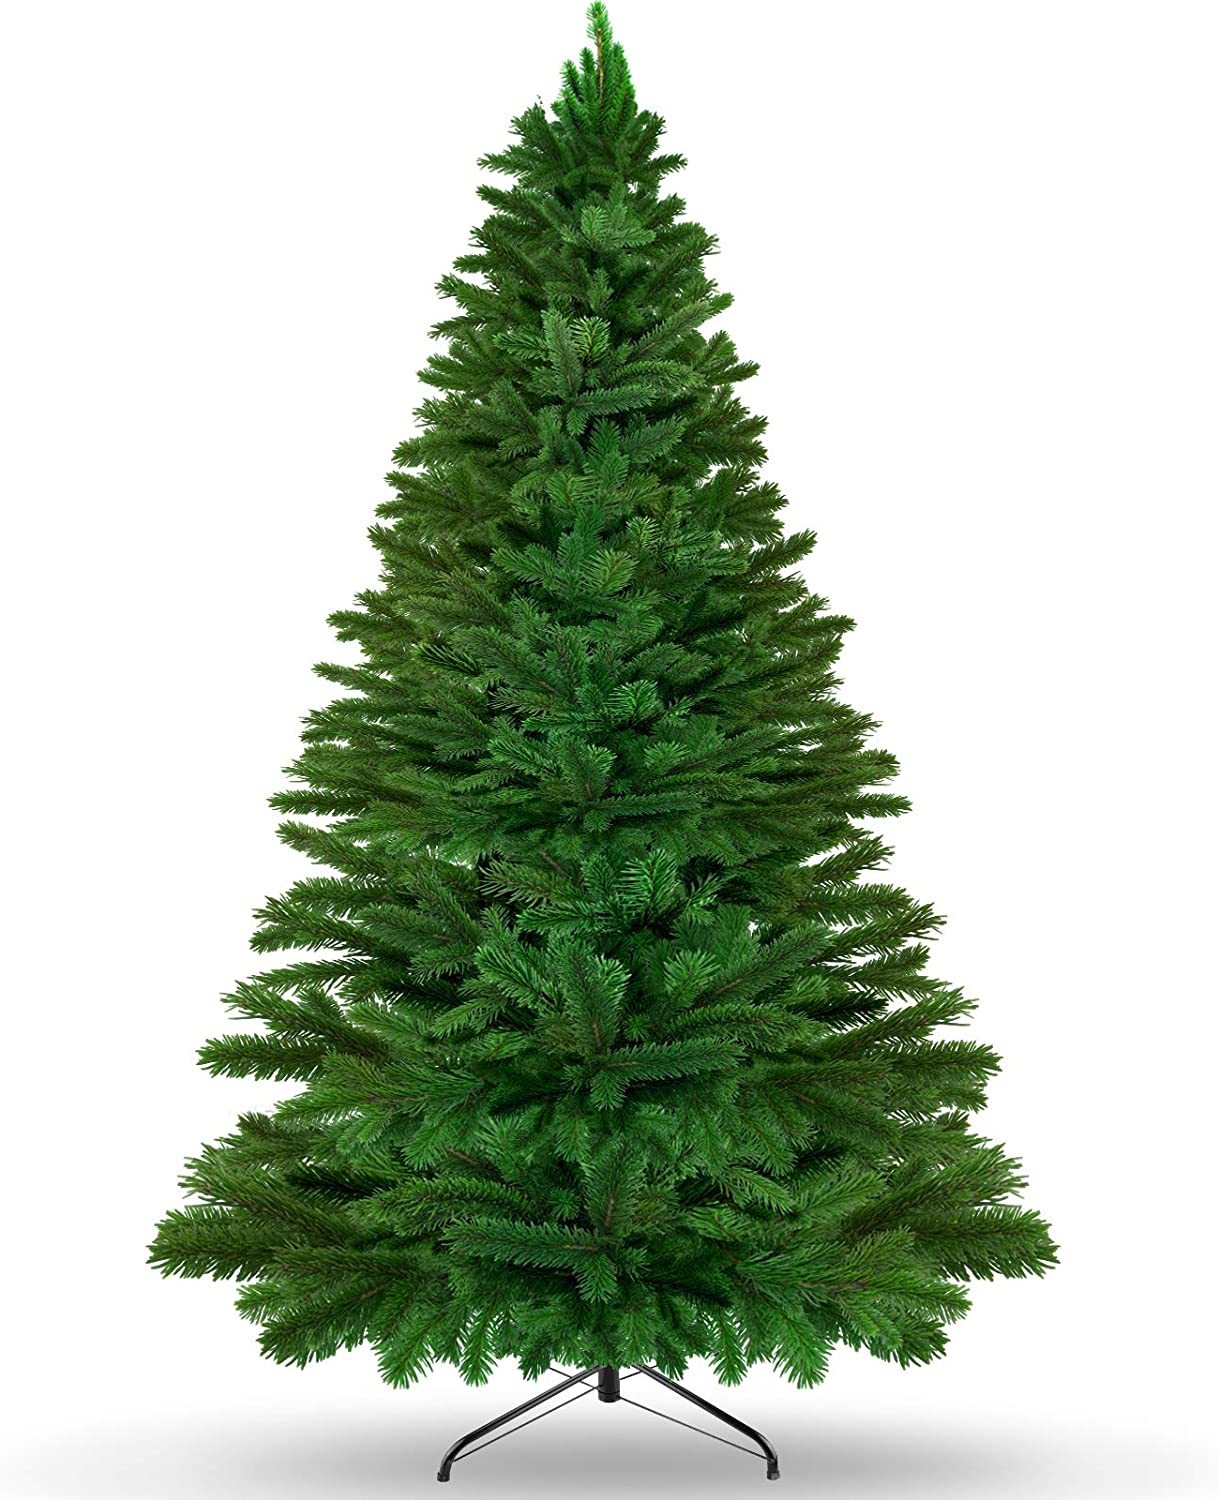 KKTICK Artificial Christmas Tree, Upgrade Fake Xmas Tree with Durable Metal Stand, Easy Assemble, 2106 Branch Tips for Lush Looking, Holiday Decorations for Home and Office, 7.5ft